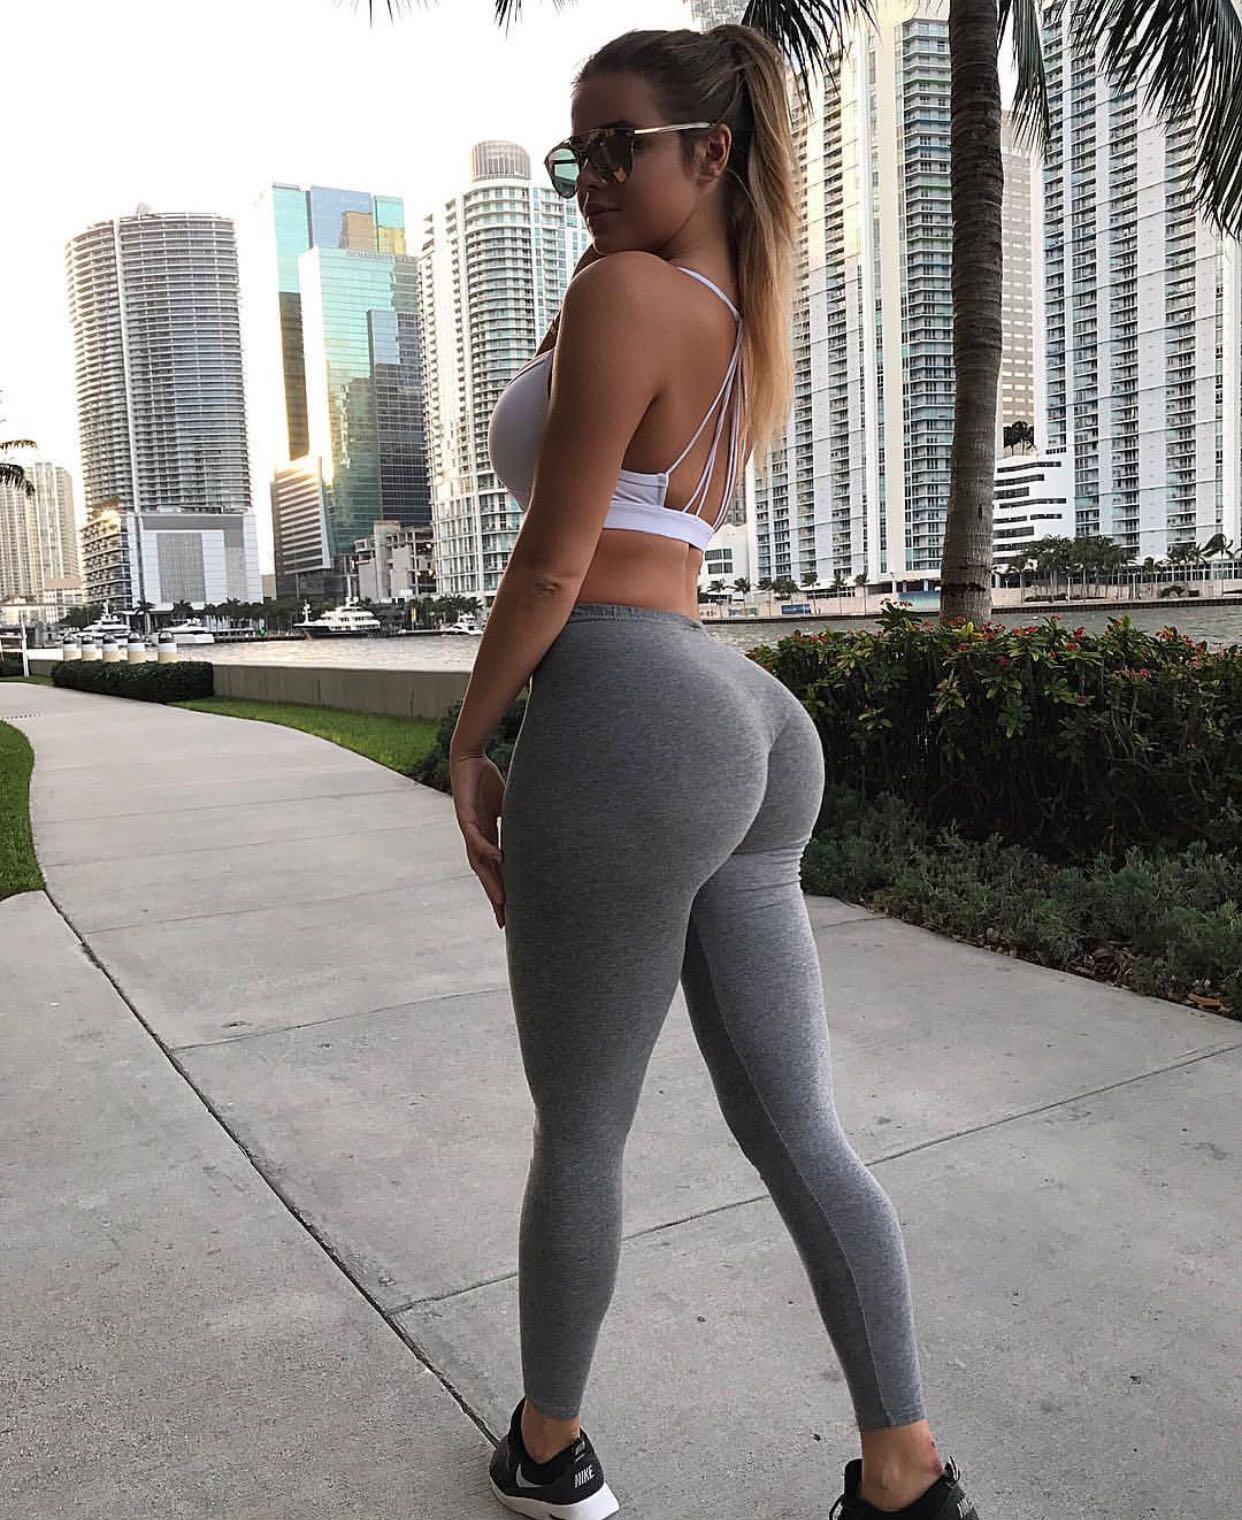 Sexy ass in white